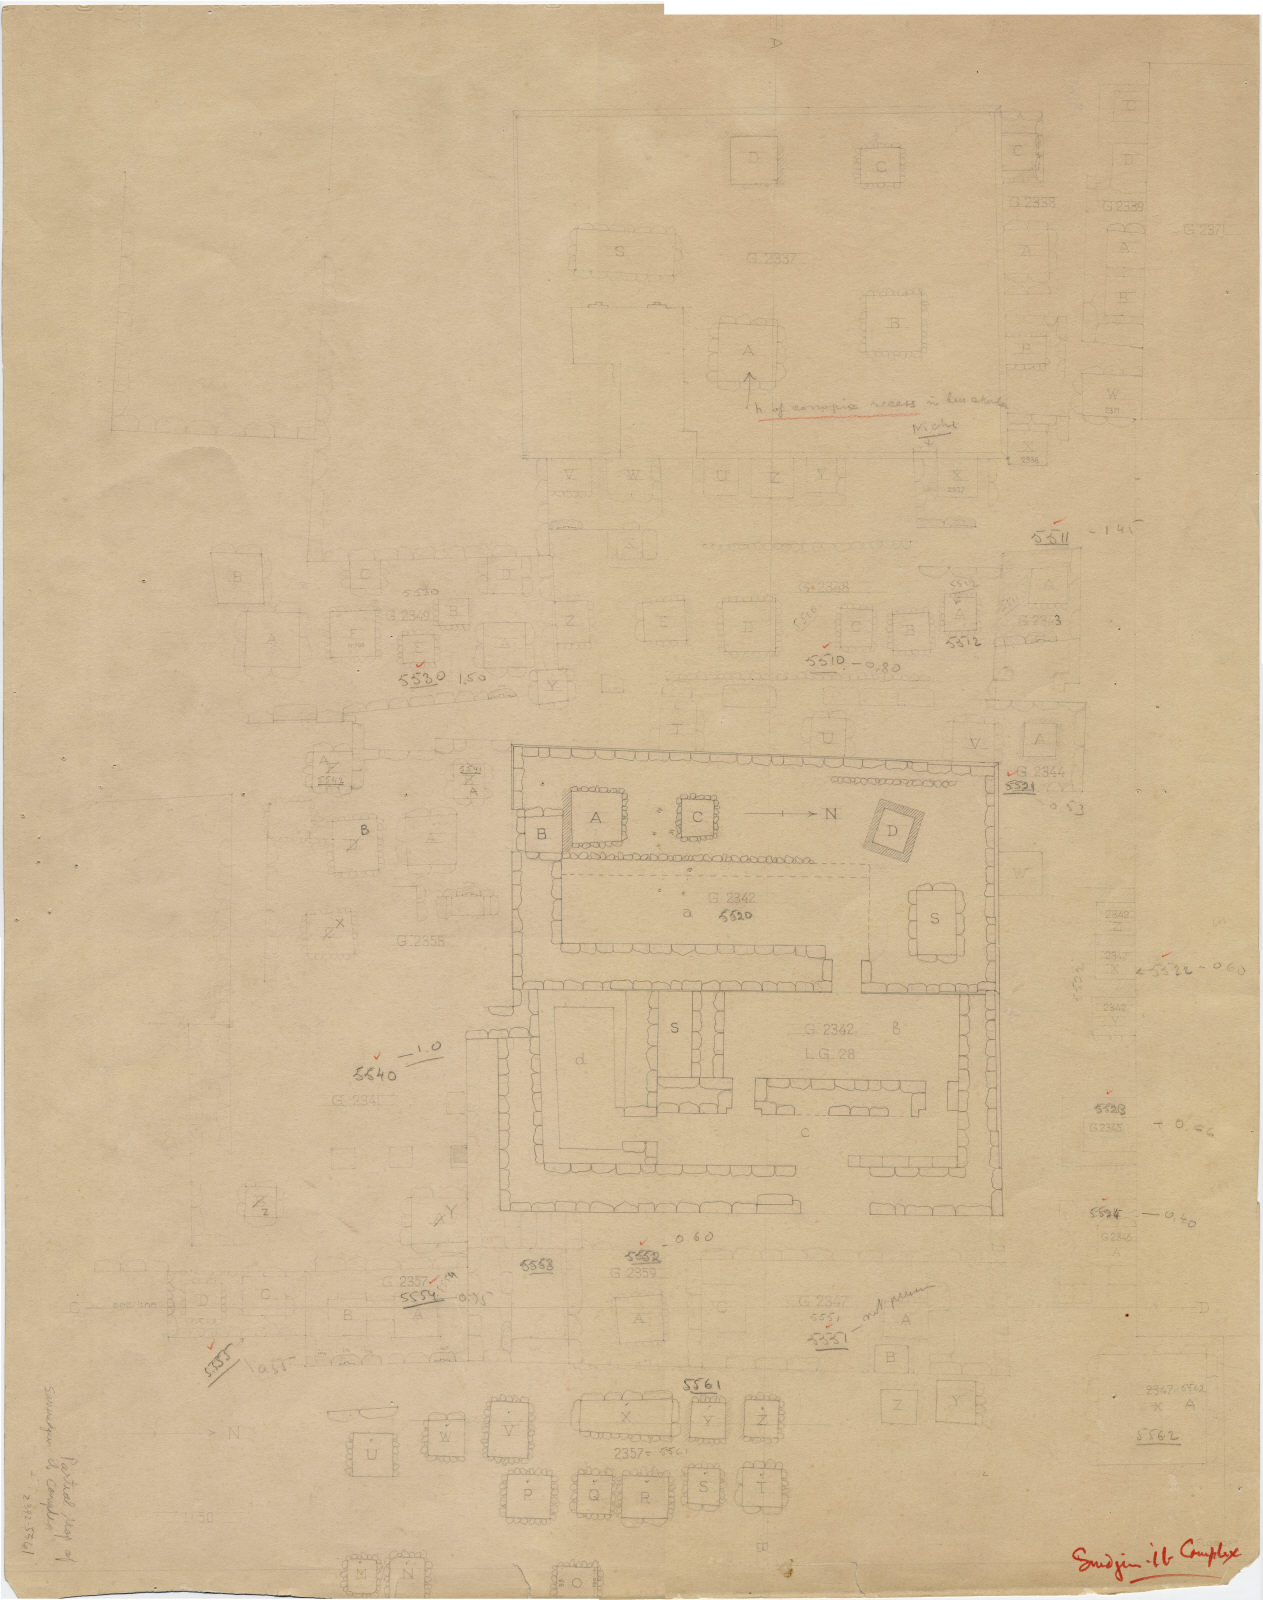 Maps and plans: Plan of Cemetery En Echelon (partial)